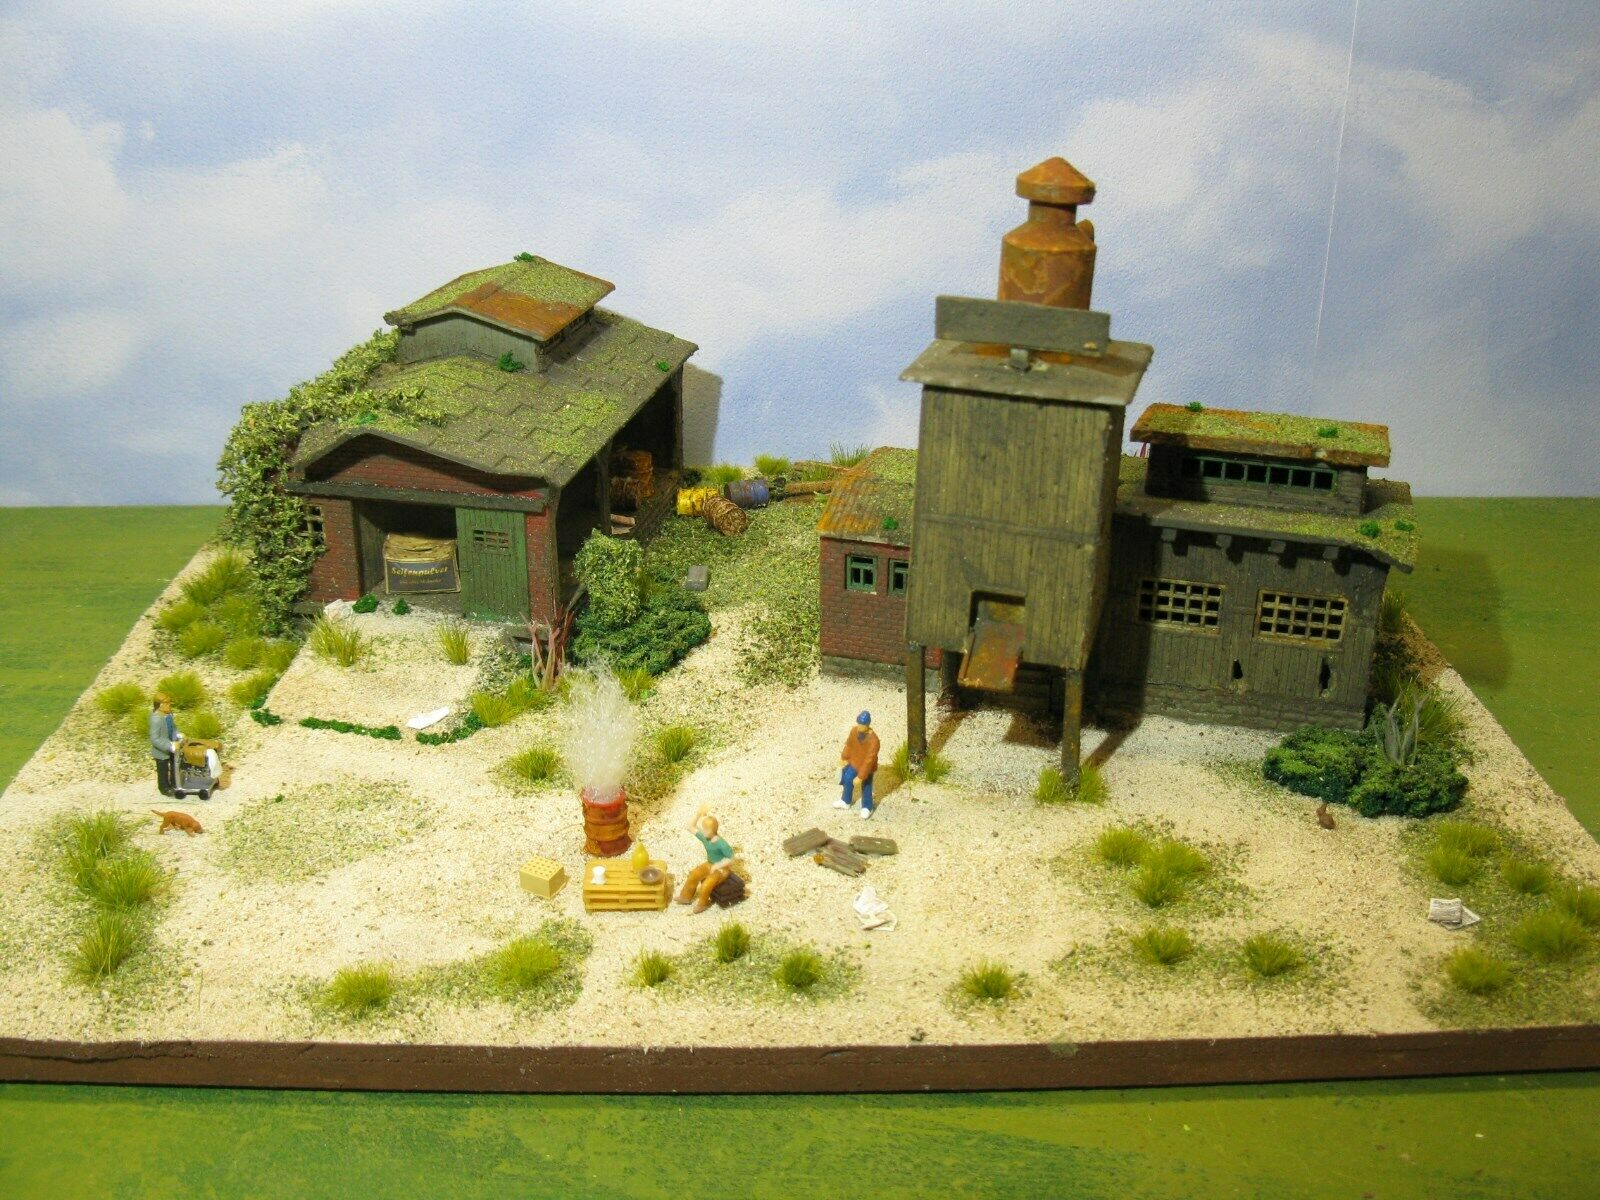 Lost places  fabbrica & paese Streicher fiamme barile LED DIORAMA h0 1 87  188